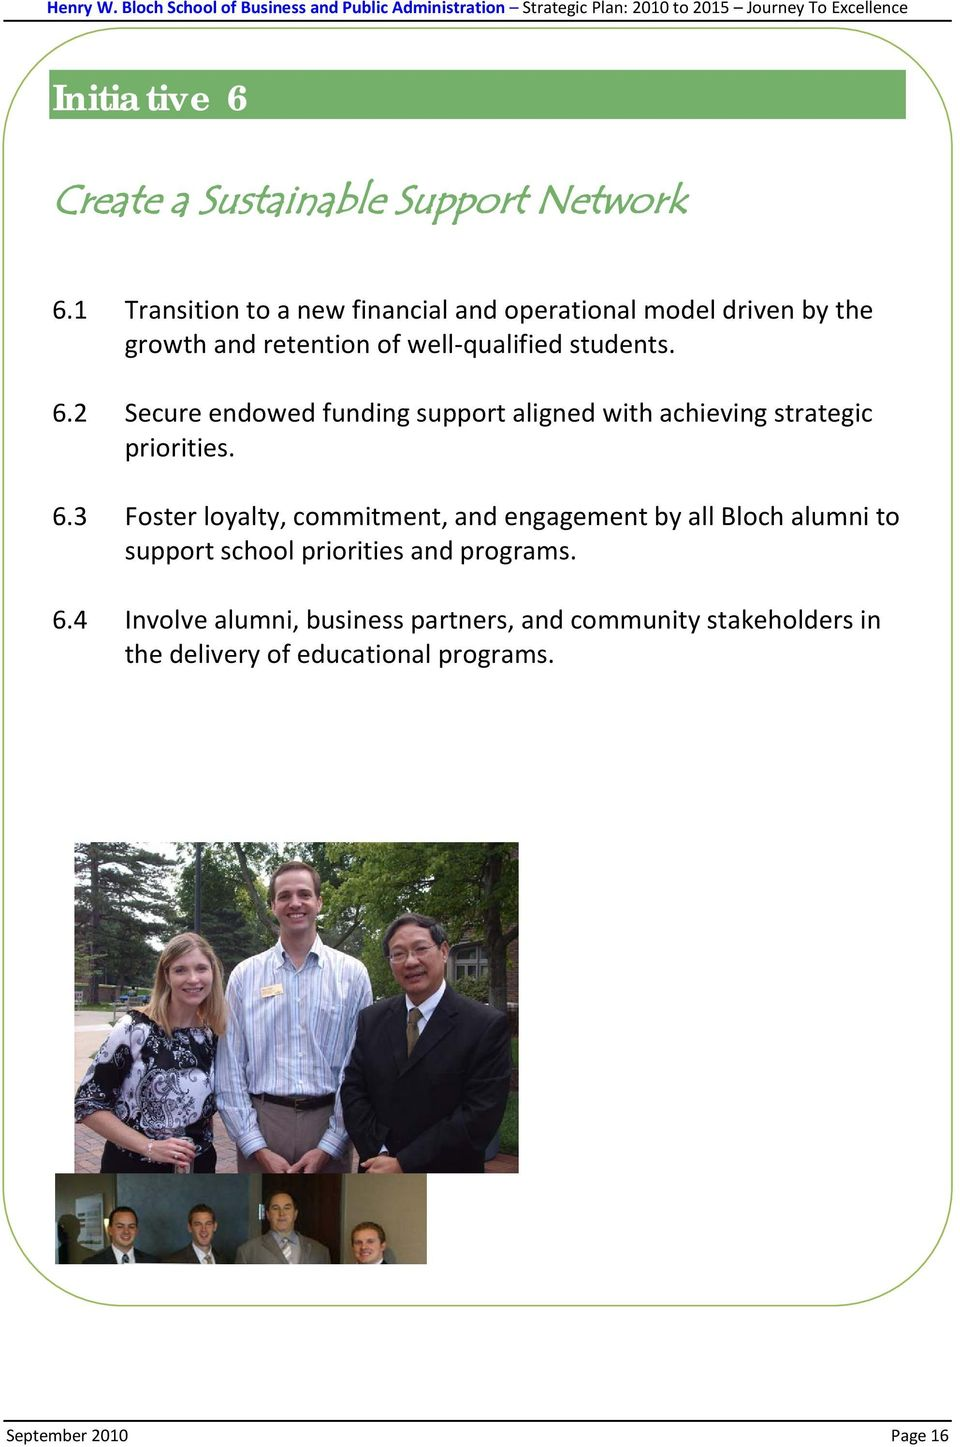 2 Secure endowed funding support aligned with achieving strategic priorities. 6.